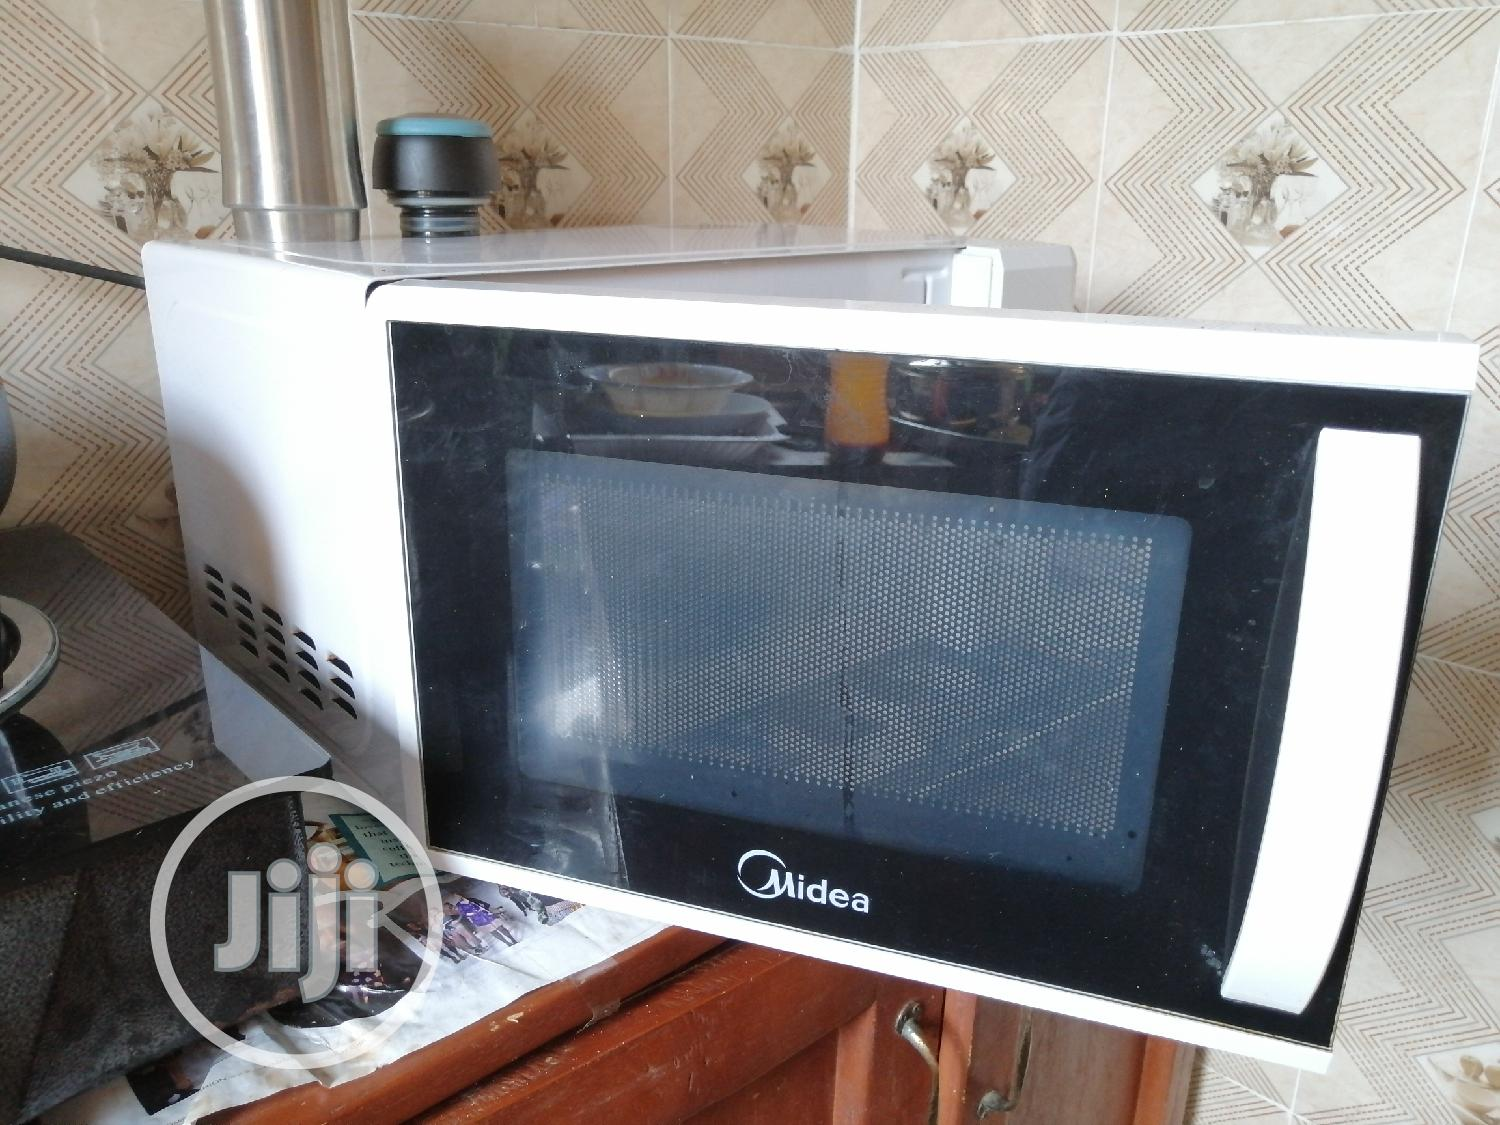 Archive: Midea Microwave With Grill